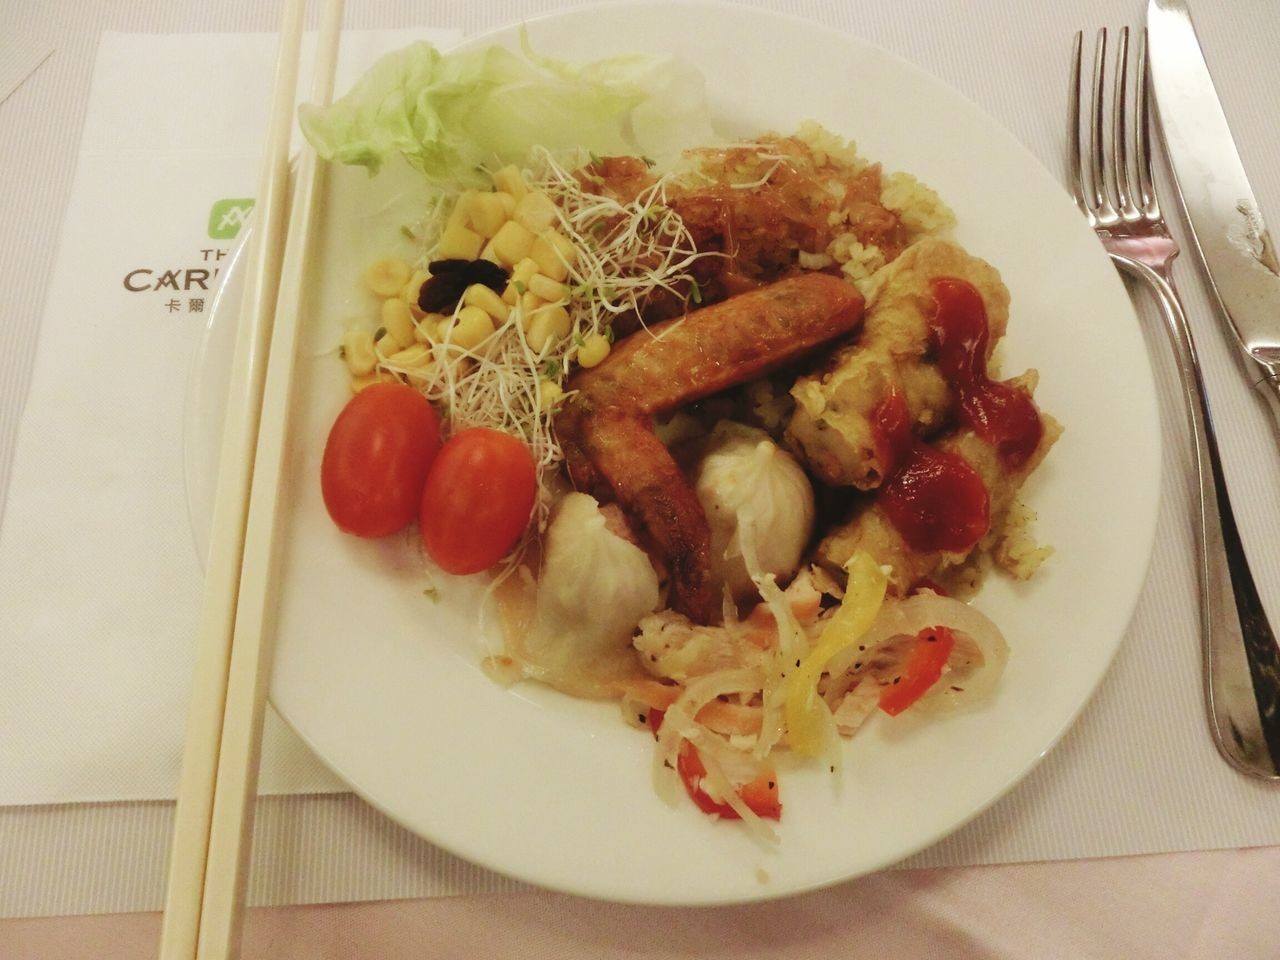 food and drink, food, plate, ready-to-eat, indoors, freshness, healthy eating, fork, no people, high angle view, table, vegetable, close-up, serving size, day